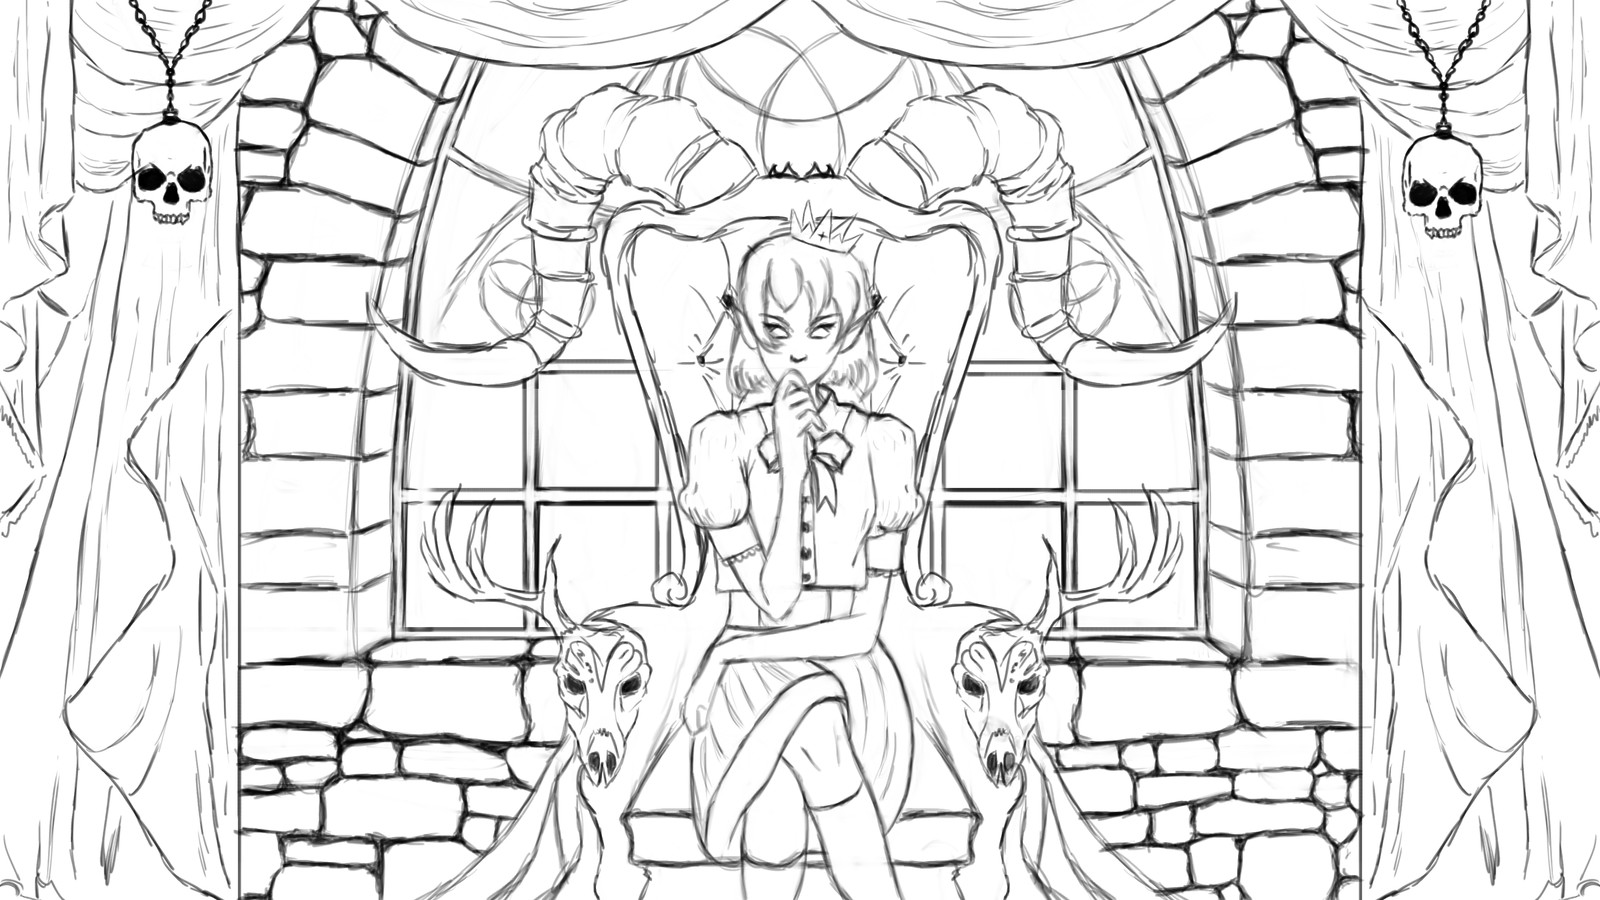 Lineart. With old character pose.